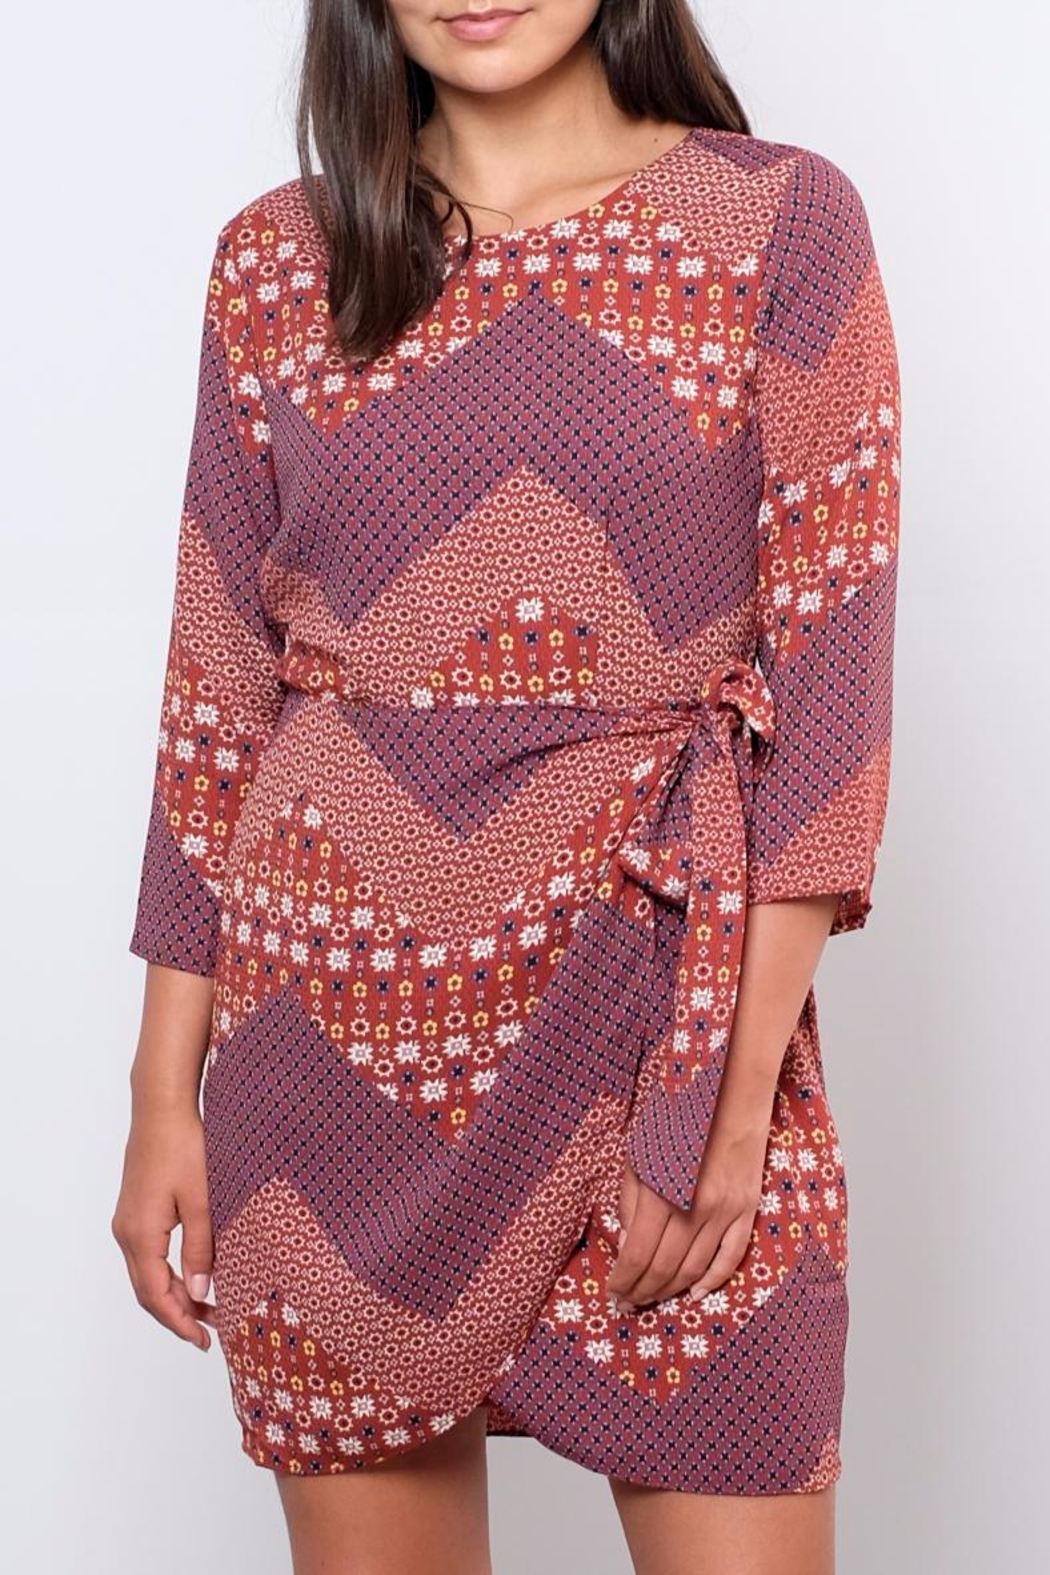 Everly Printed Wrap Dress - Main Image